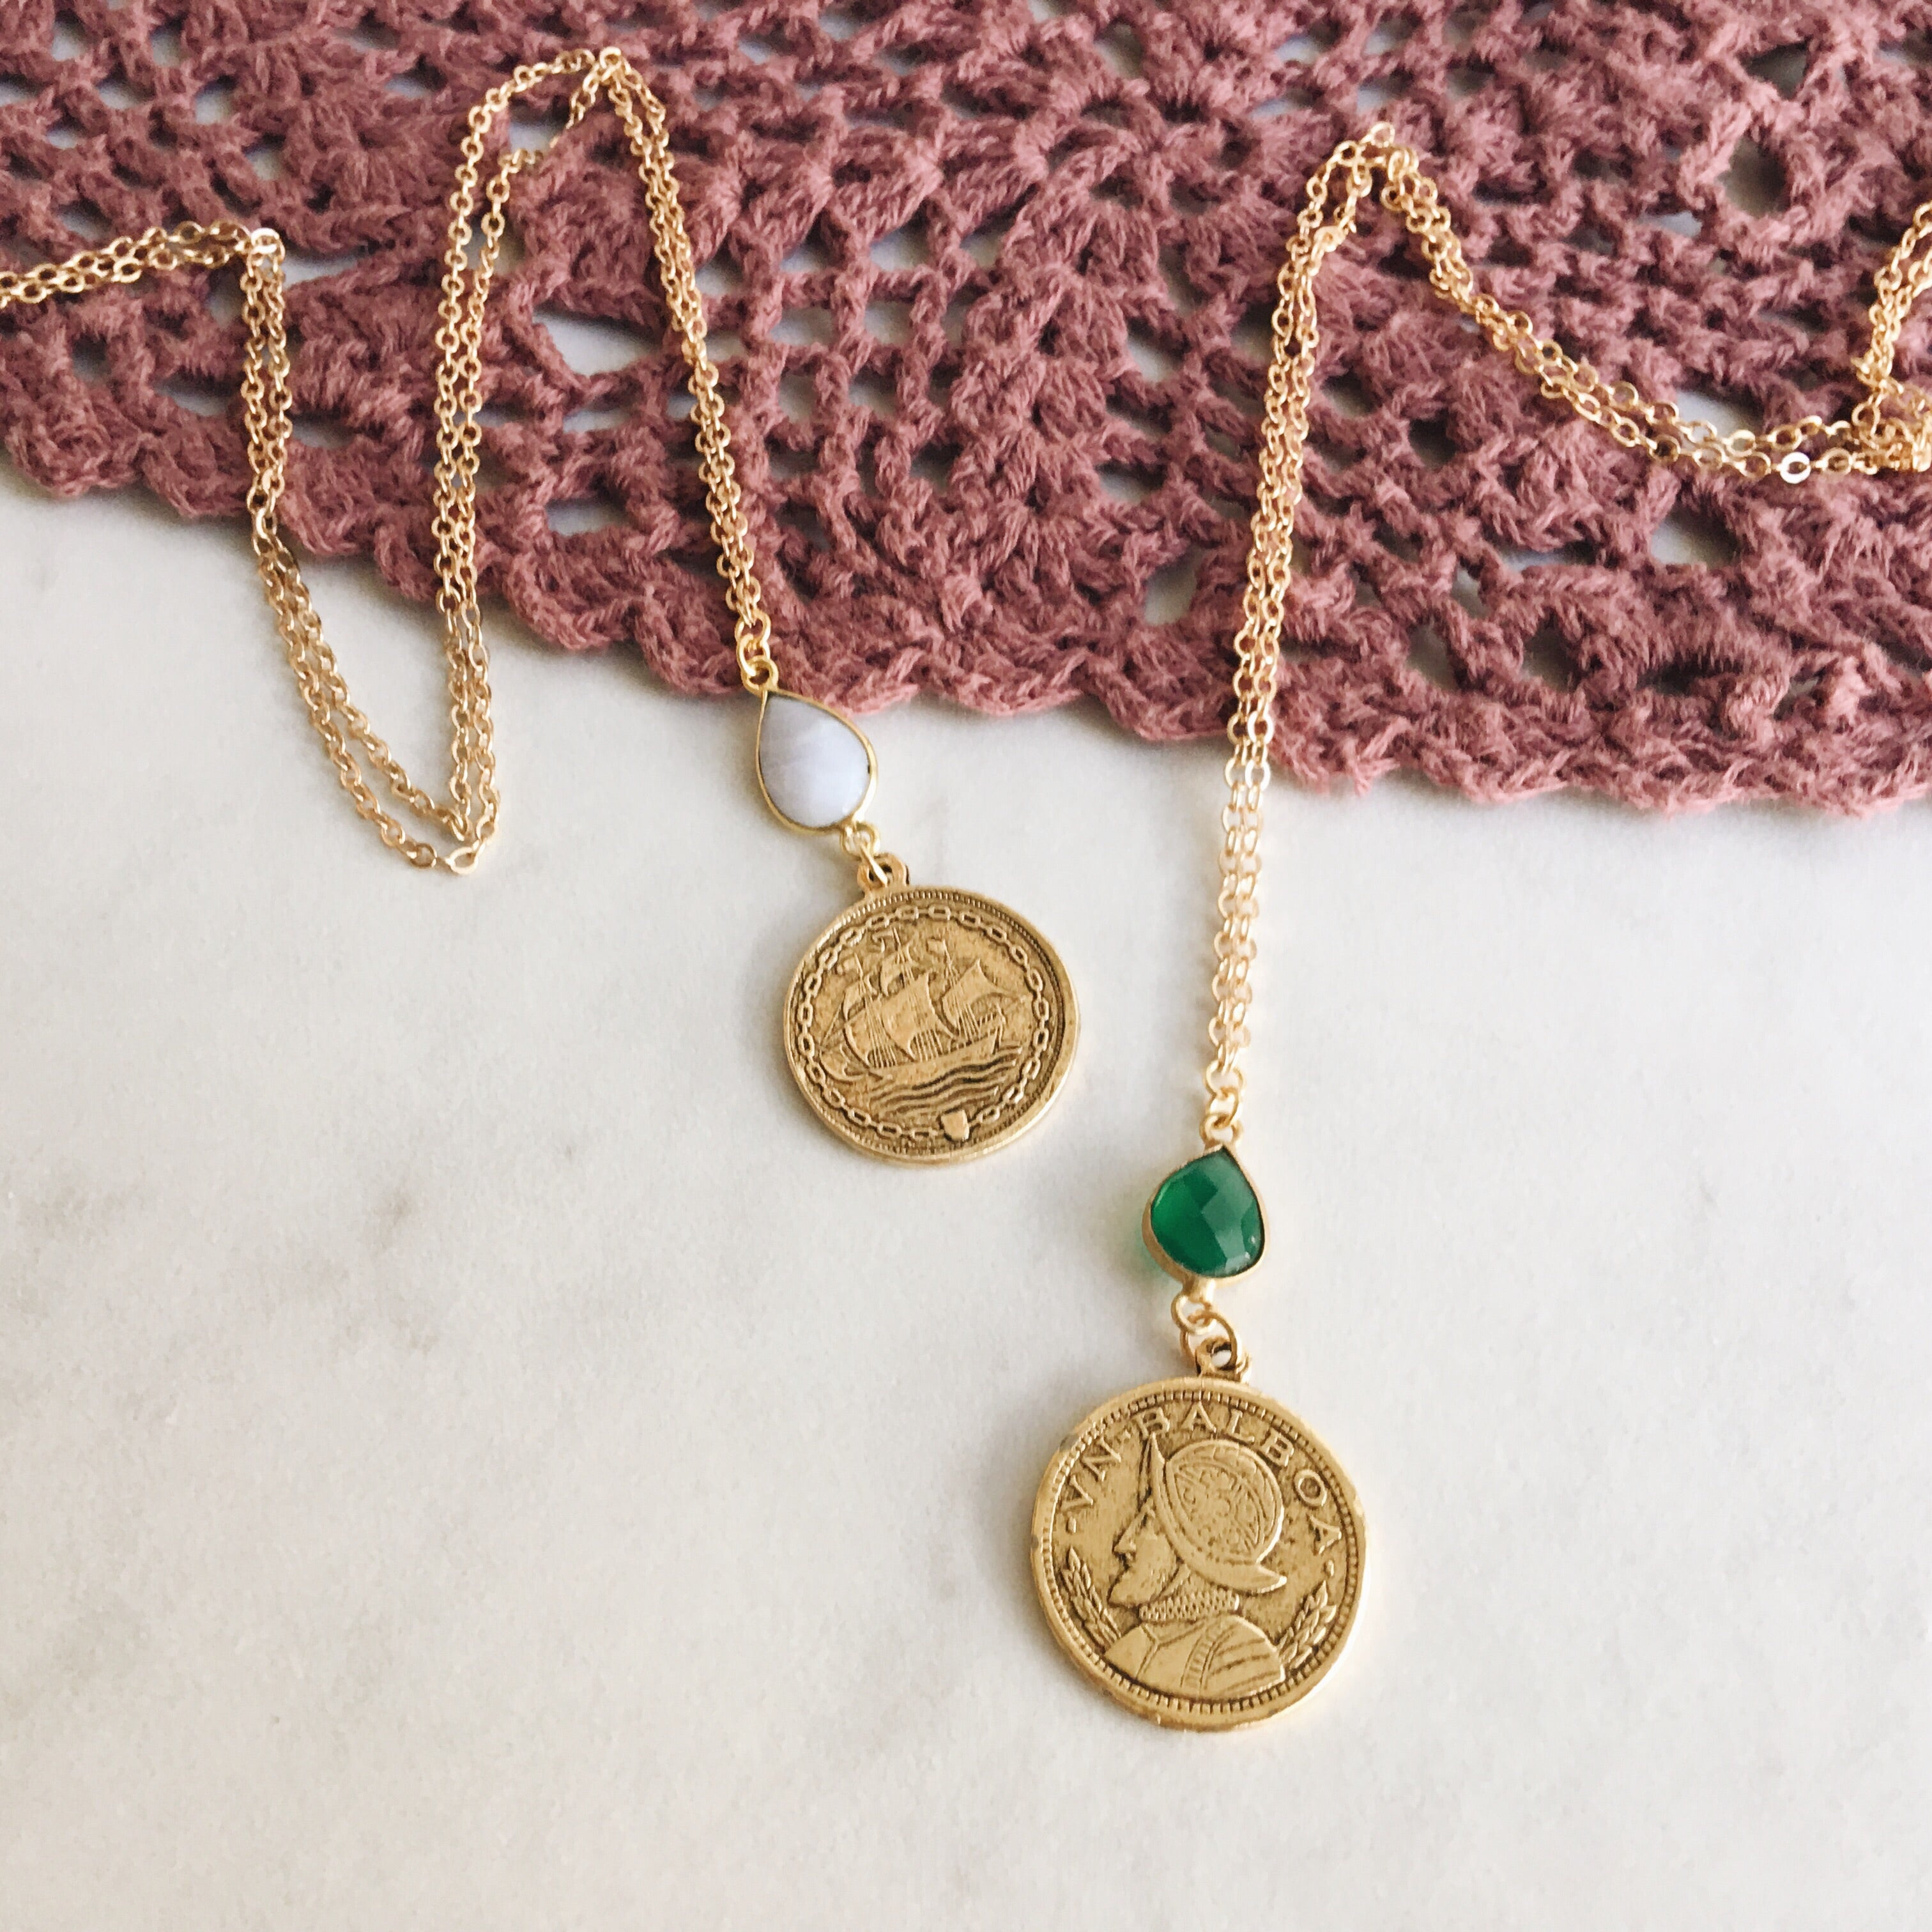 Balboa Coin Necklace